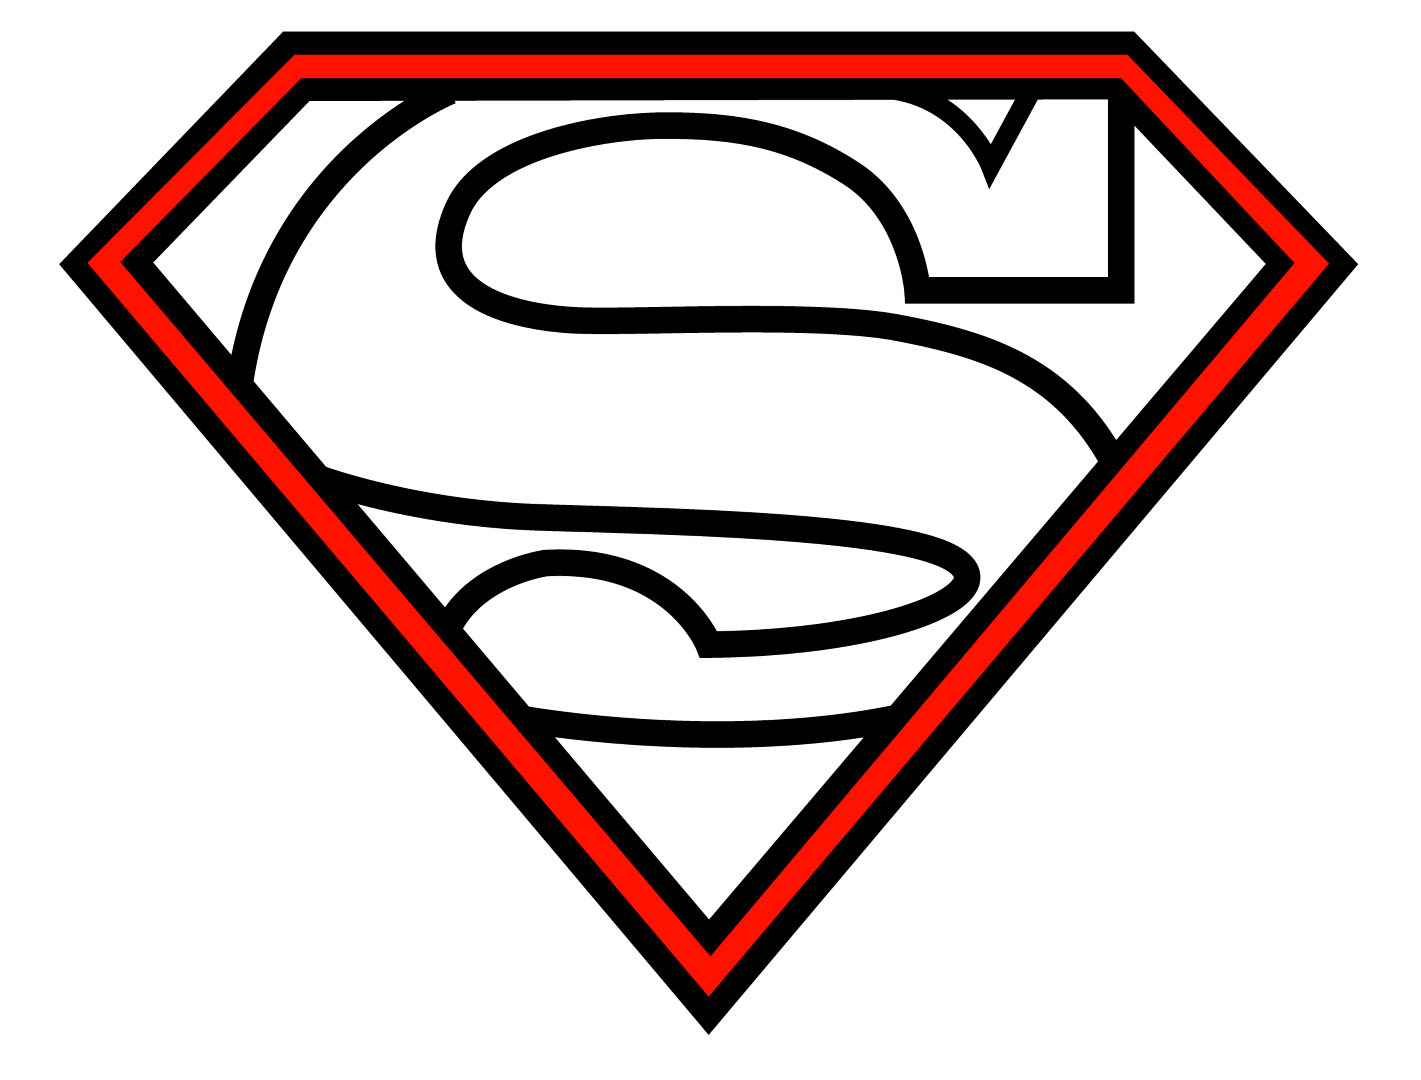 Avalanche drawing easy. Free empty superman logo